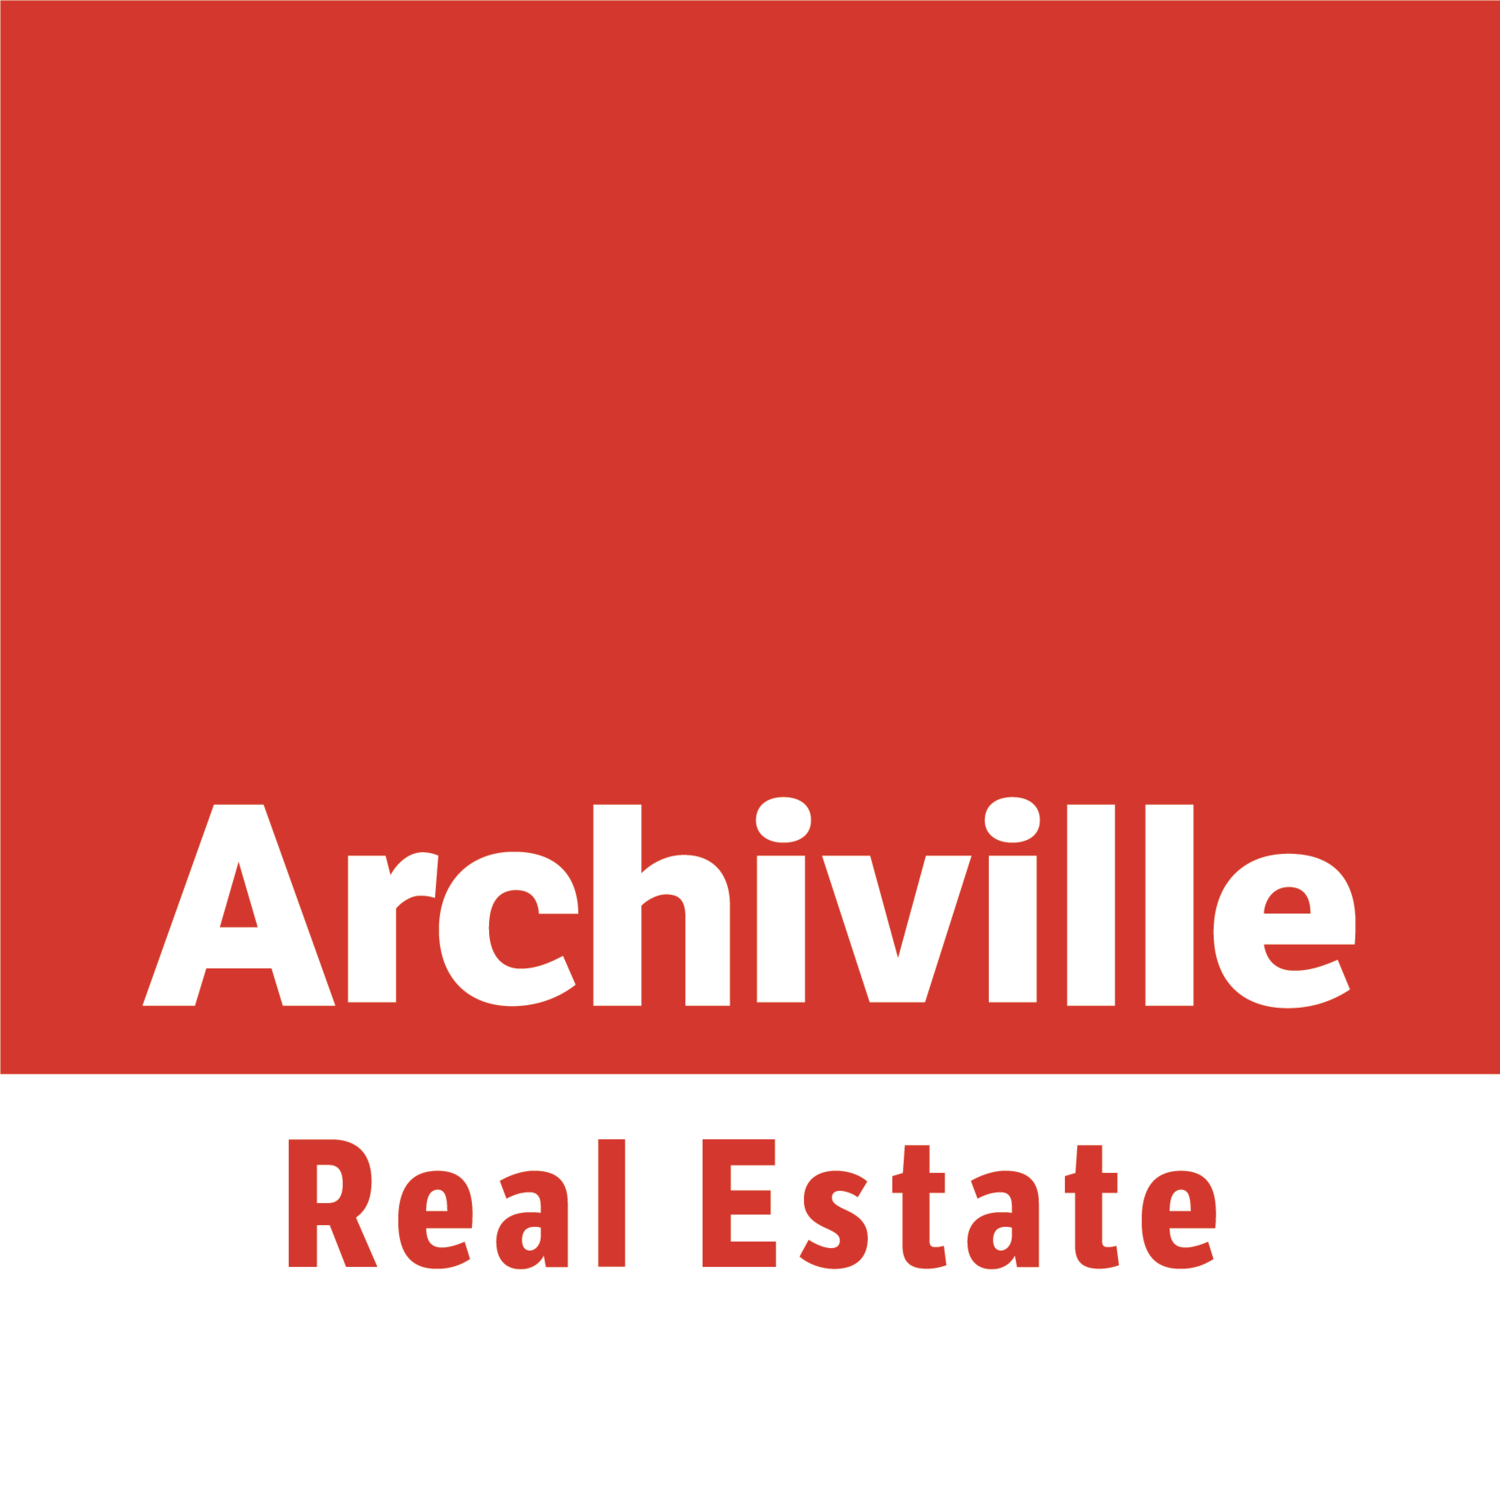 Archiville Real Estate